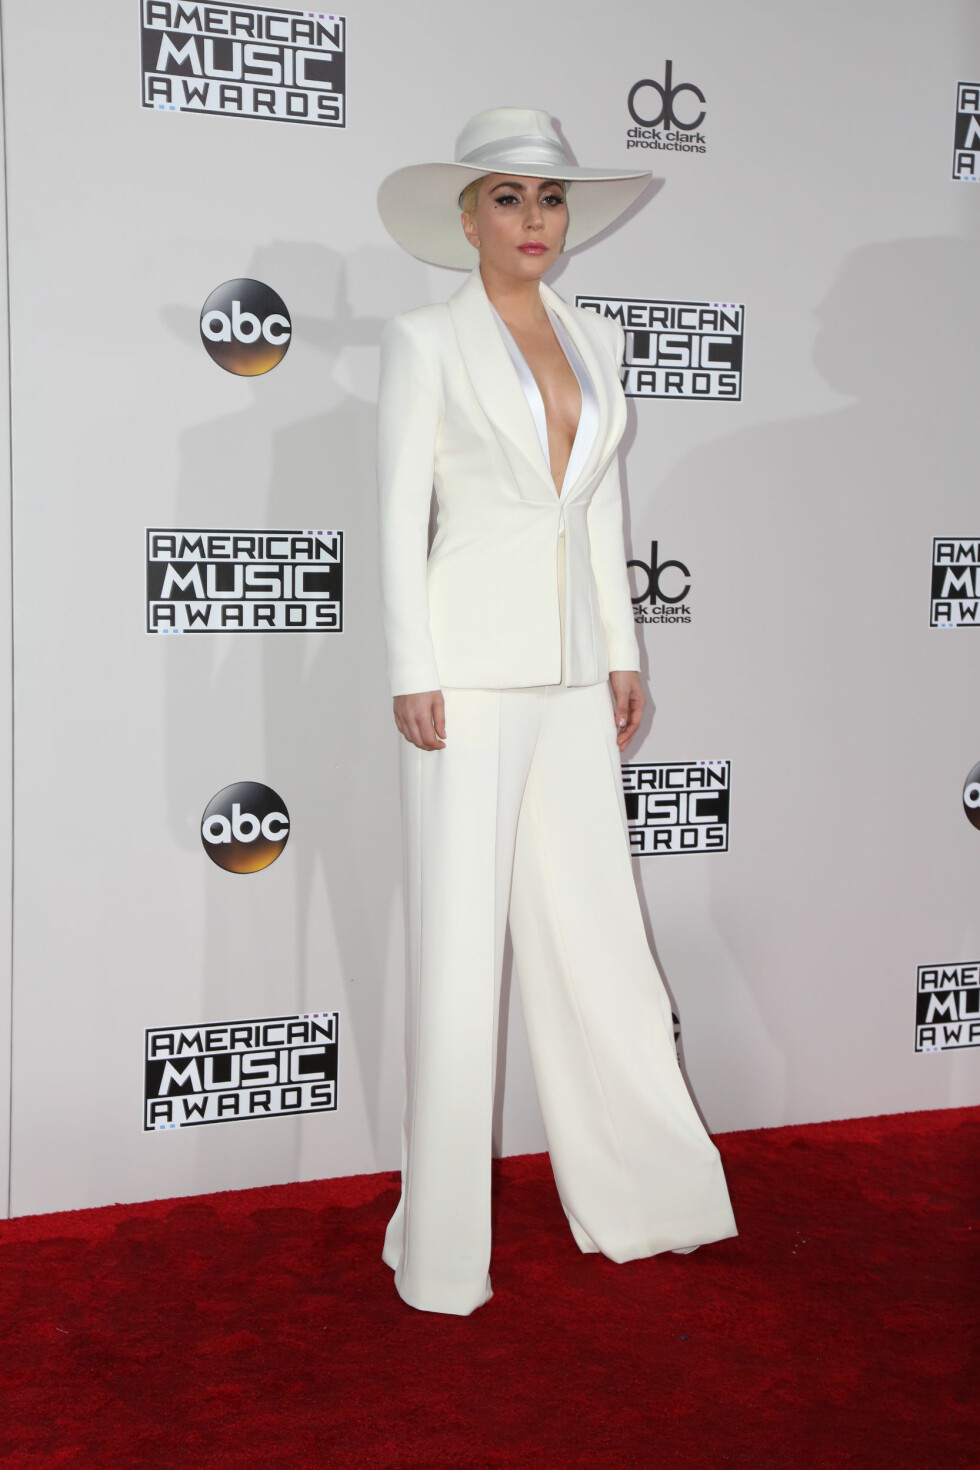 AMERICAN MUSIC AWARDS: Lady Gaga Foto: SipaUSA